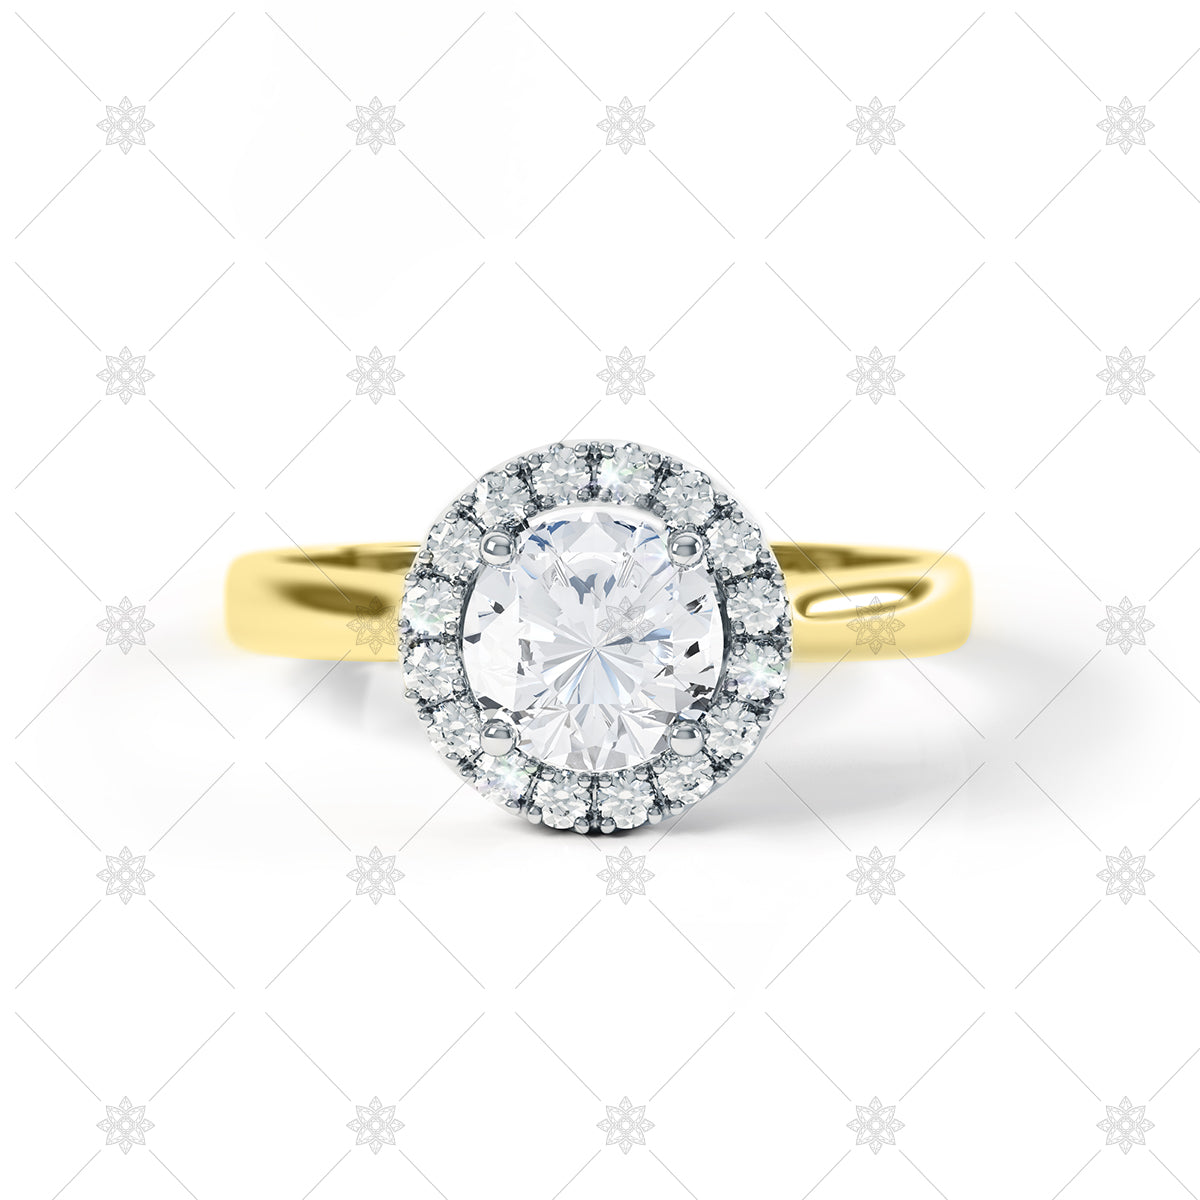 Diamond Halo Ring Image in Yellow Gold